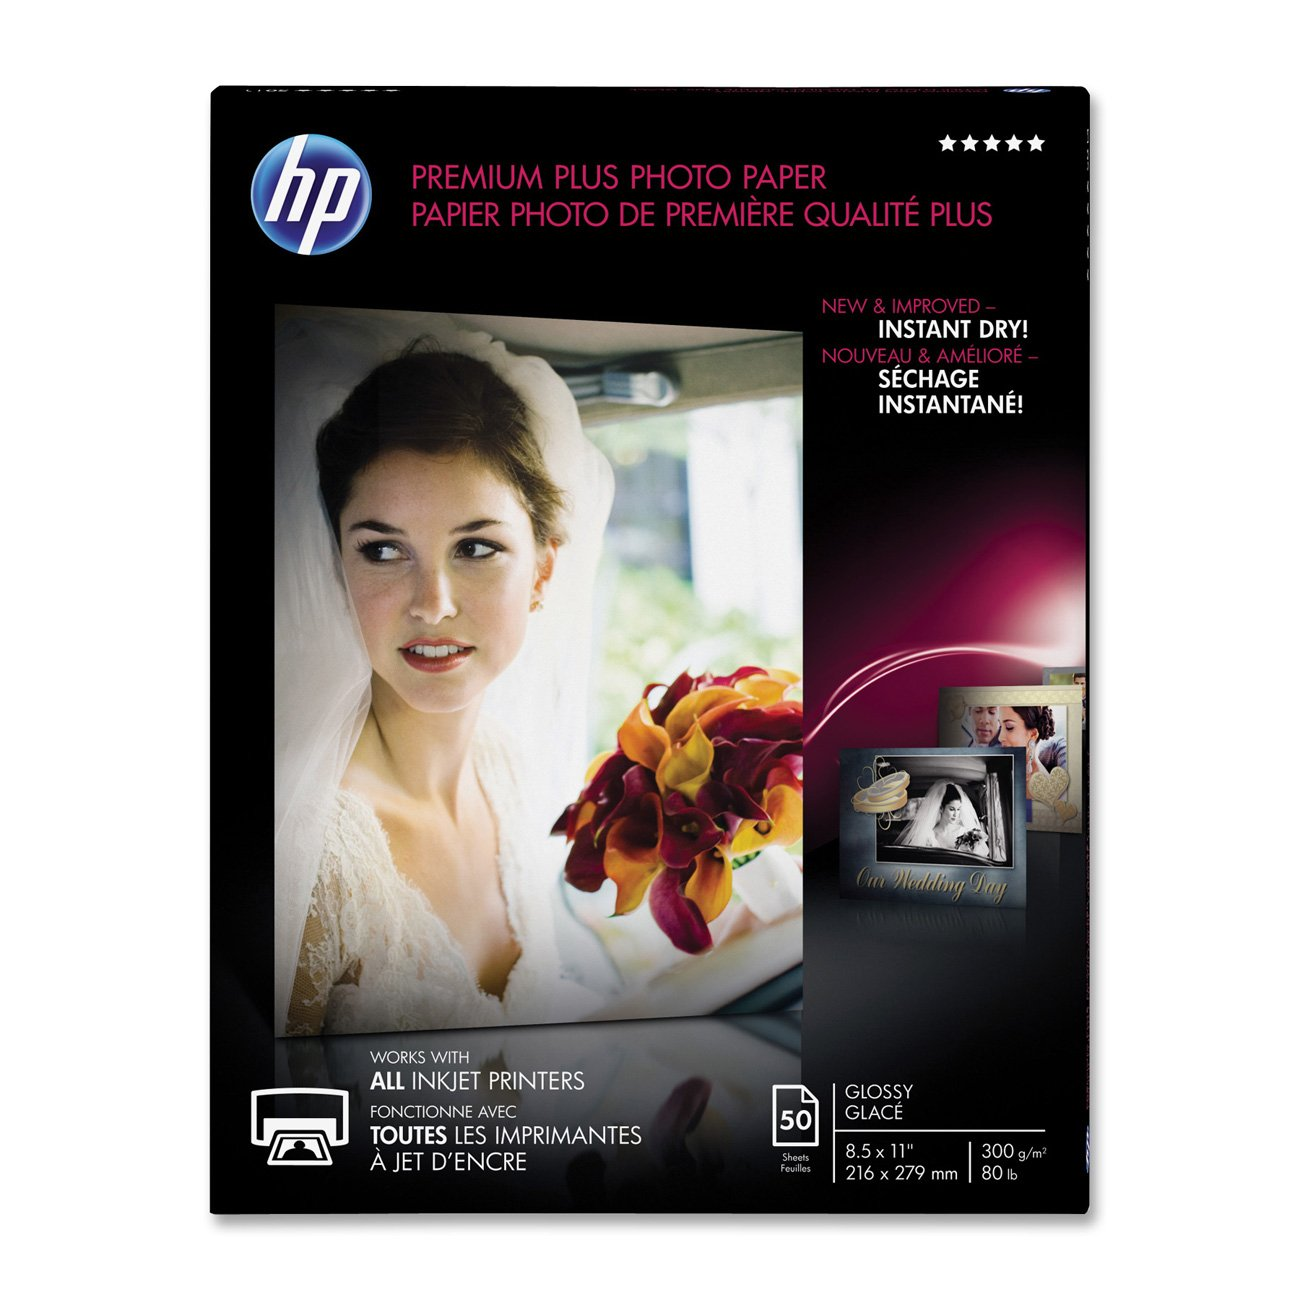 HP Premier Plus Photo Paper -For Inkjet Print -Letter -8.50x11 -300 g/m -Glossy -1/Pack -White Hp - Hp Paper CR664A Office Supplies